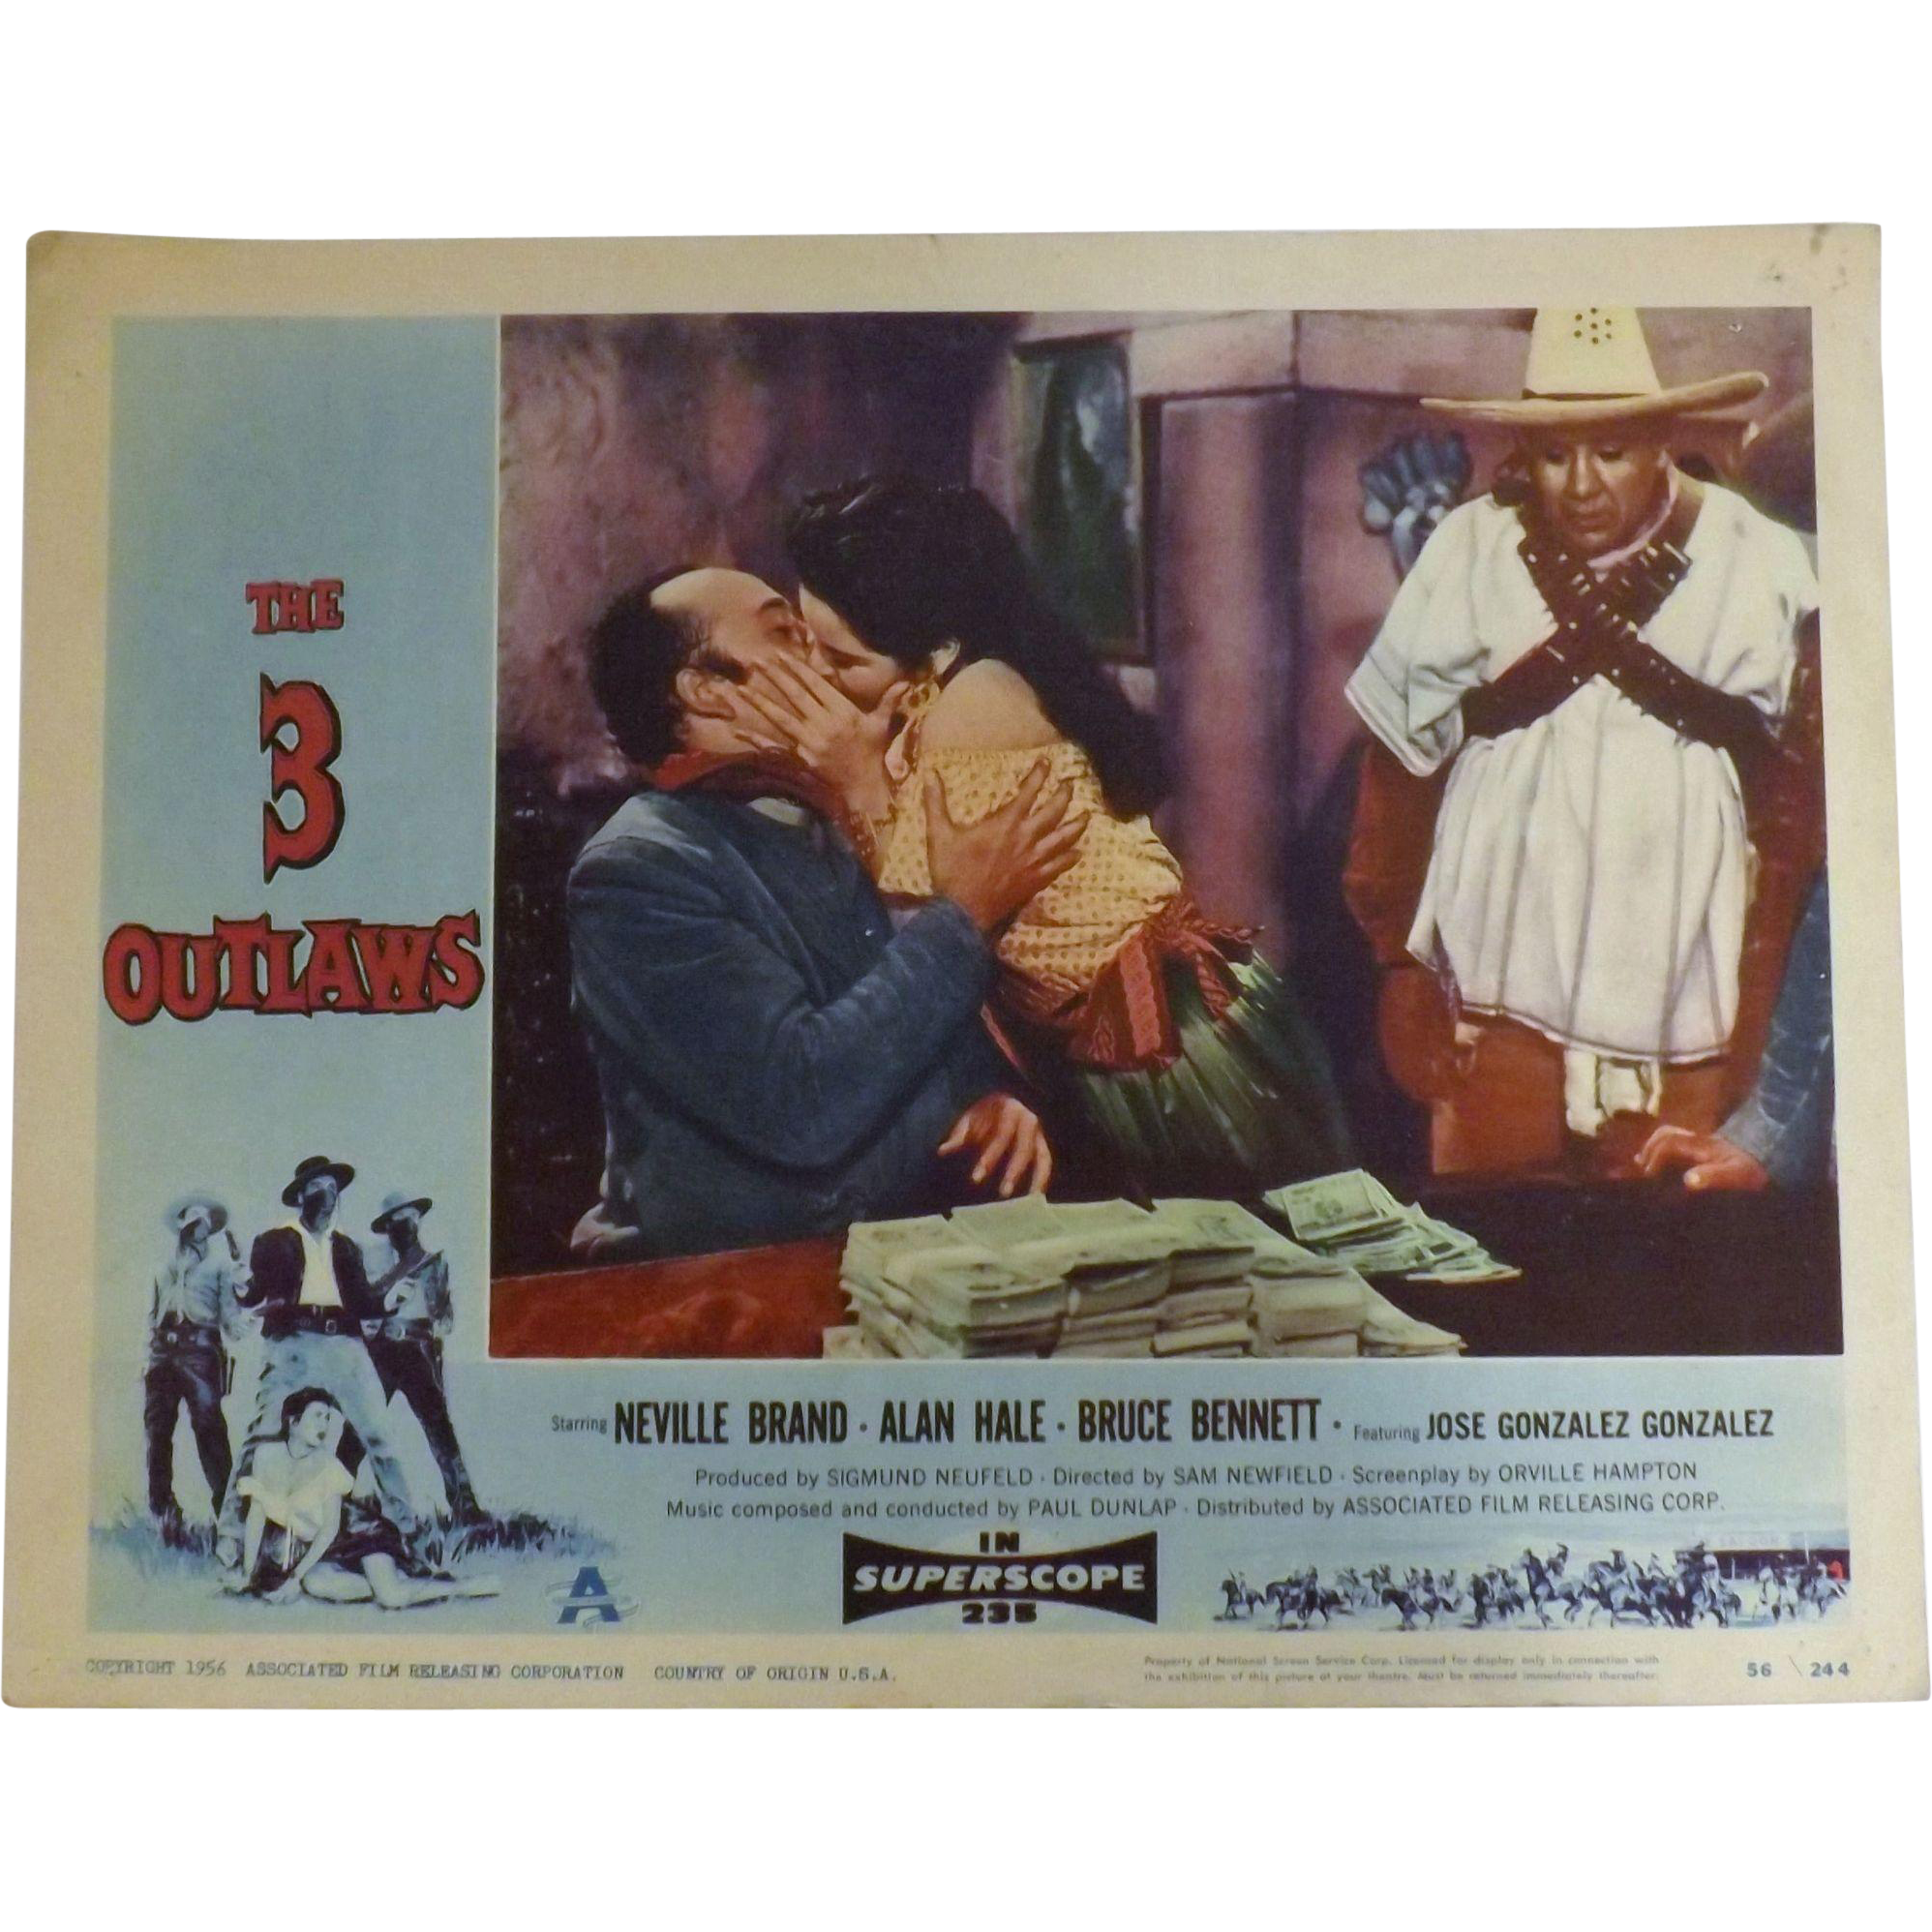 The 3 Outlaws -1956 Lobby Card